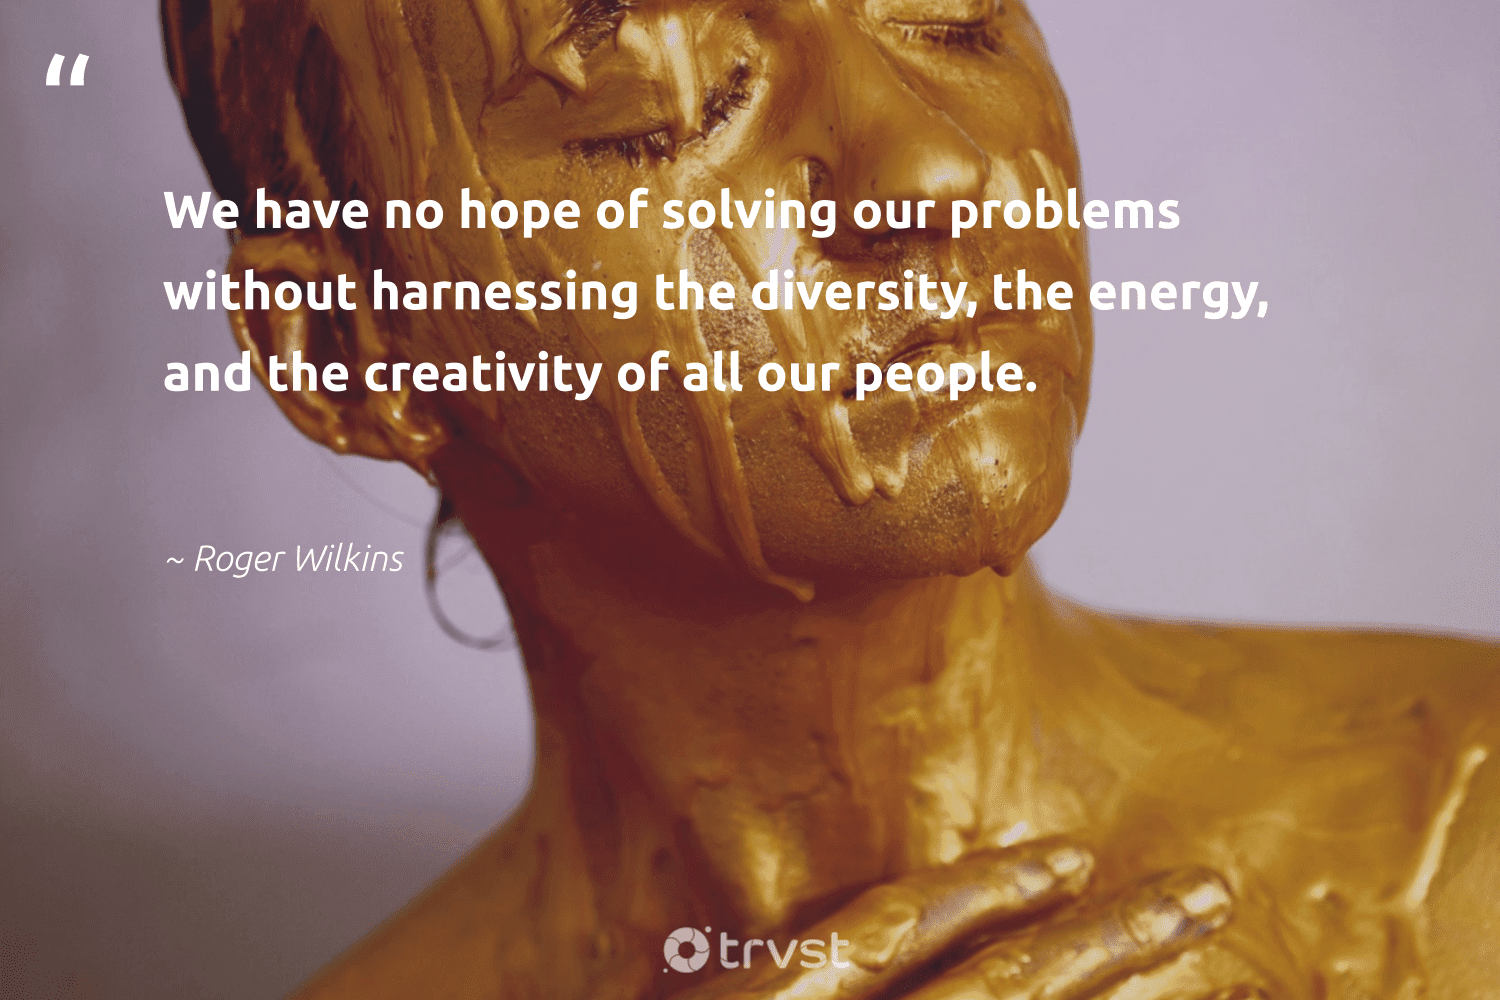 """""""We have no hope of solving our problems without harnessing the diversity, the energy, and the creativity of all our people.""""  - Roger Wilkins #trvst #quotes #diversity #energy #hope #creativity #discrimination #representationmatters #socialgood #weareallone #beinspired #inclusion"""